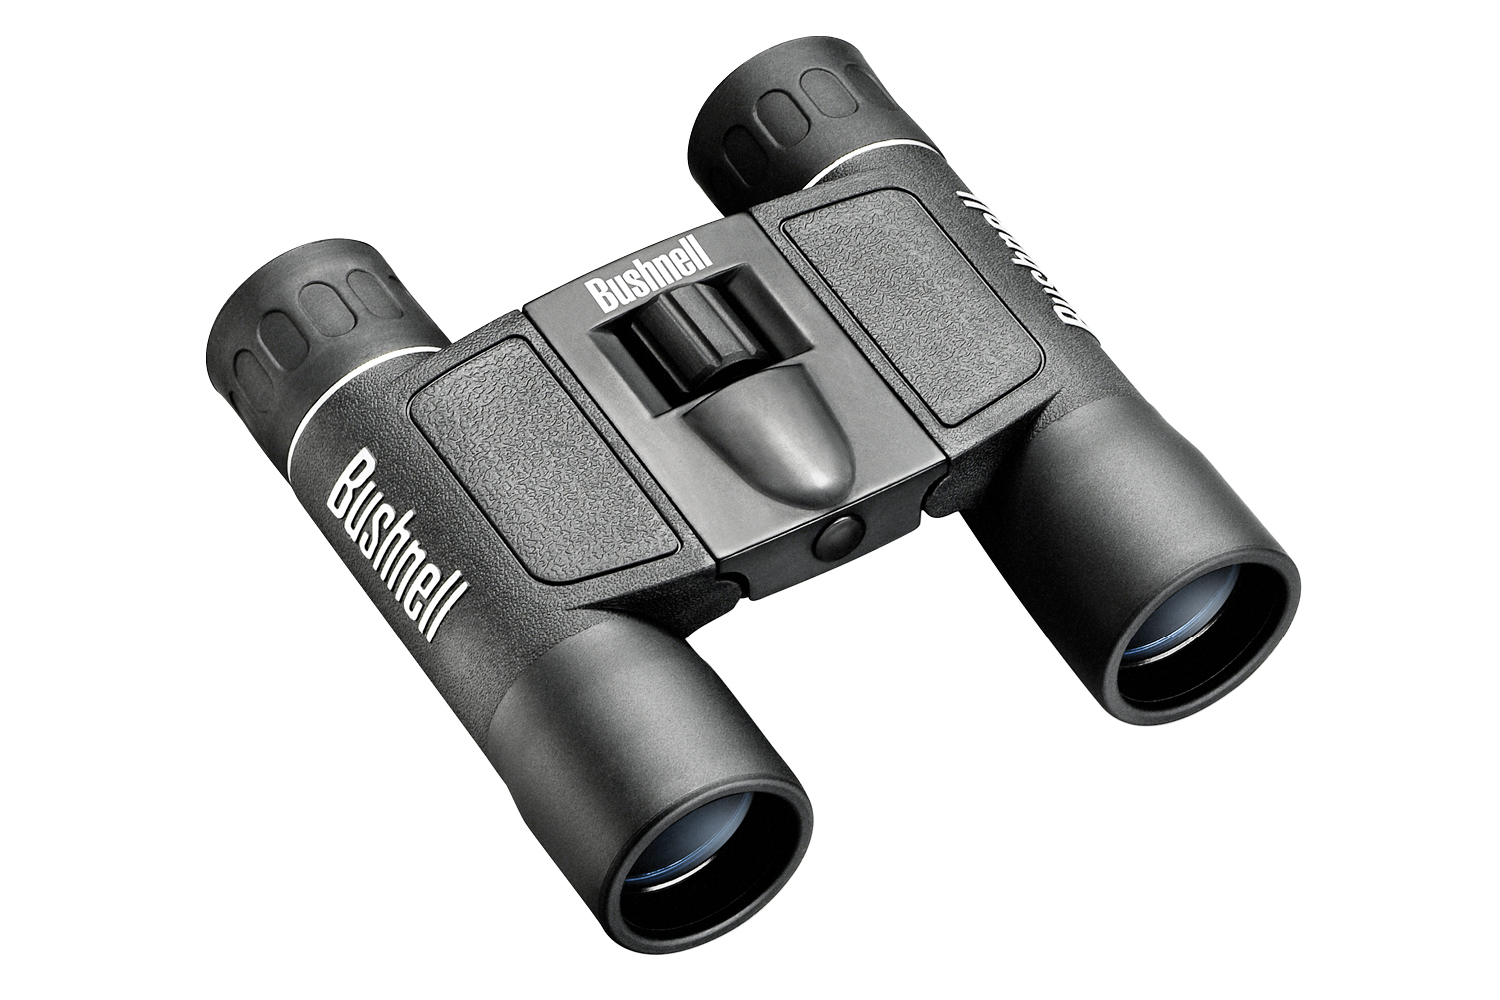 Бинокль Bushnell PowerView ROOF 10x25 бинокль fujinon 10x25 hcf phc